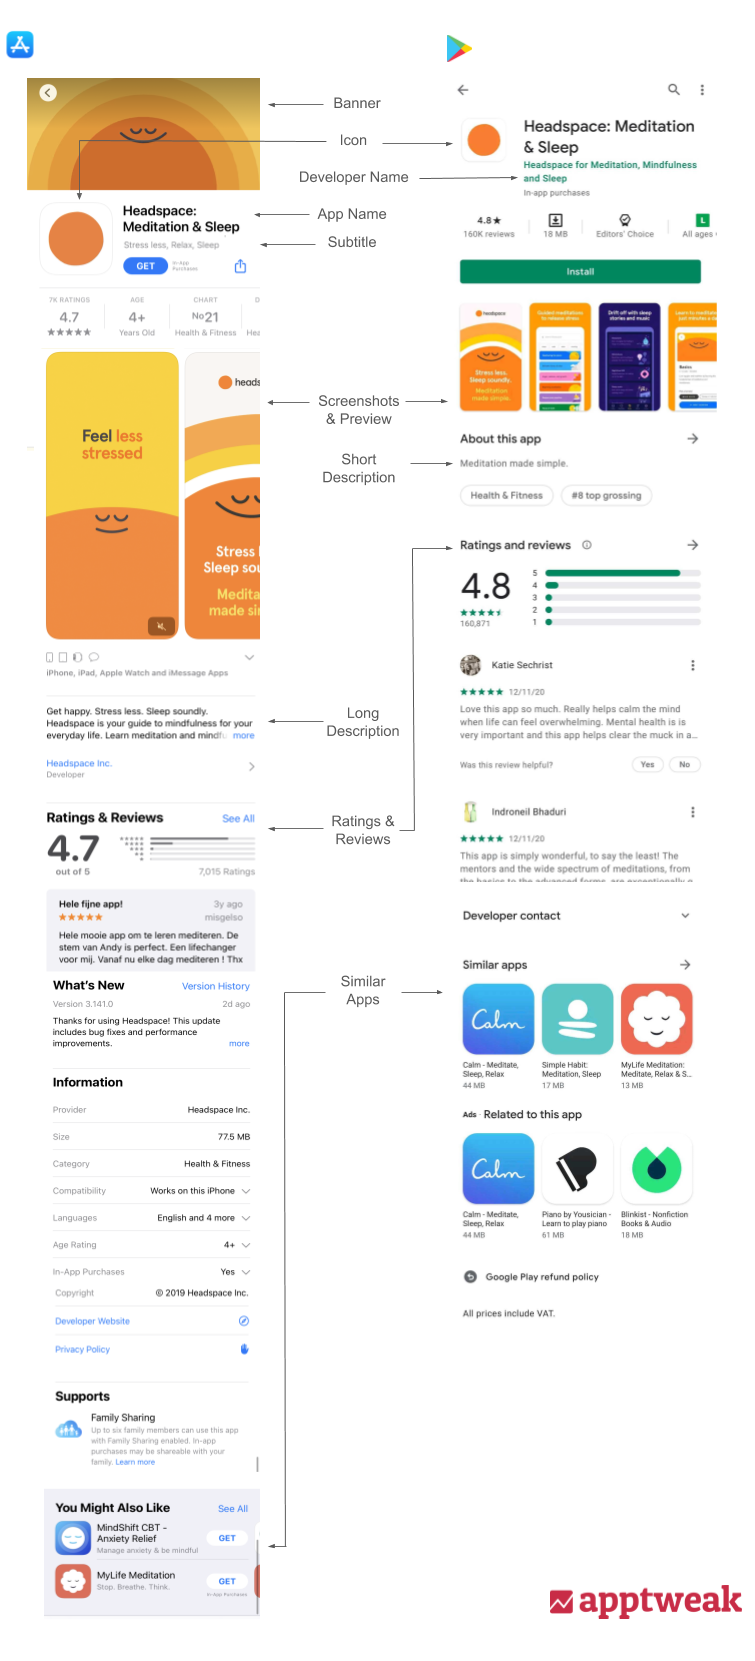 An overview of what the app product page of Headspace looks like in the Apple App Store vs the Google Play Store.